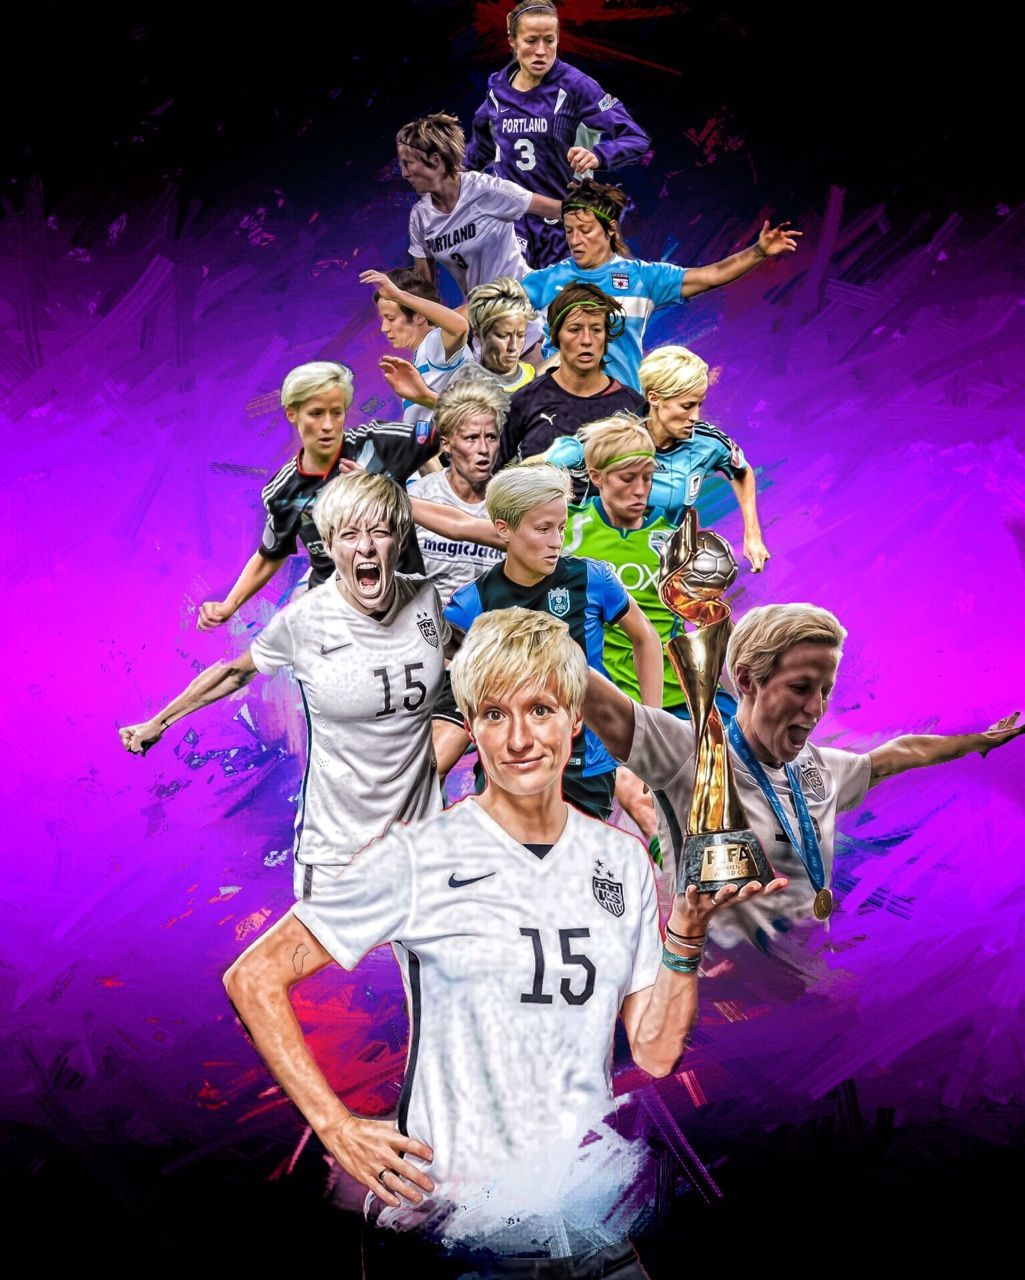 Megan Rapinoe From University Of Portland To Seattle Reign National Team Usa Soccer Team Us Women S National Soccer Team Usa Soccer Women